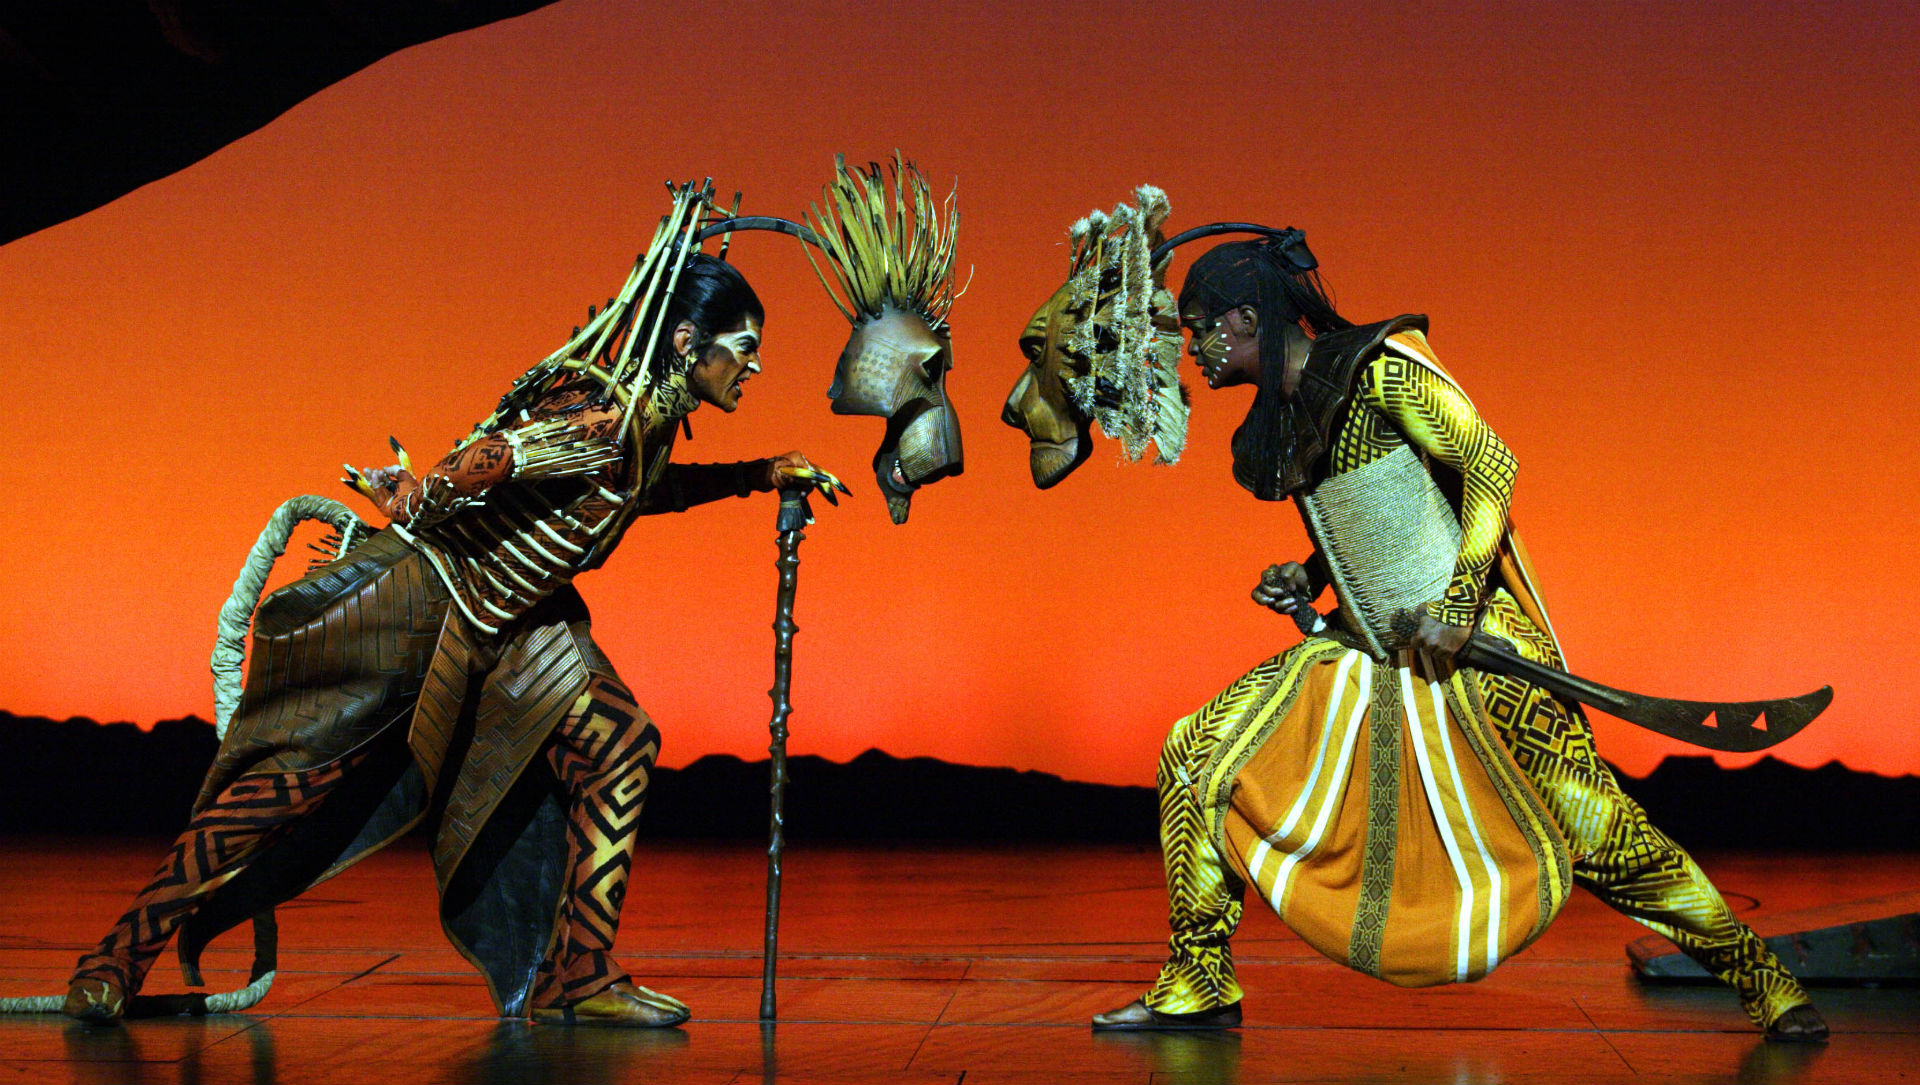 Mufasa and Scar face off on the Lyceum Theatre stage in the Lion King live production